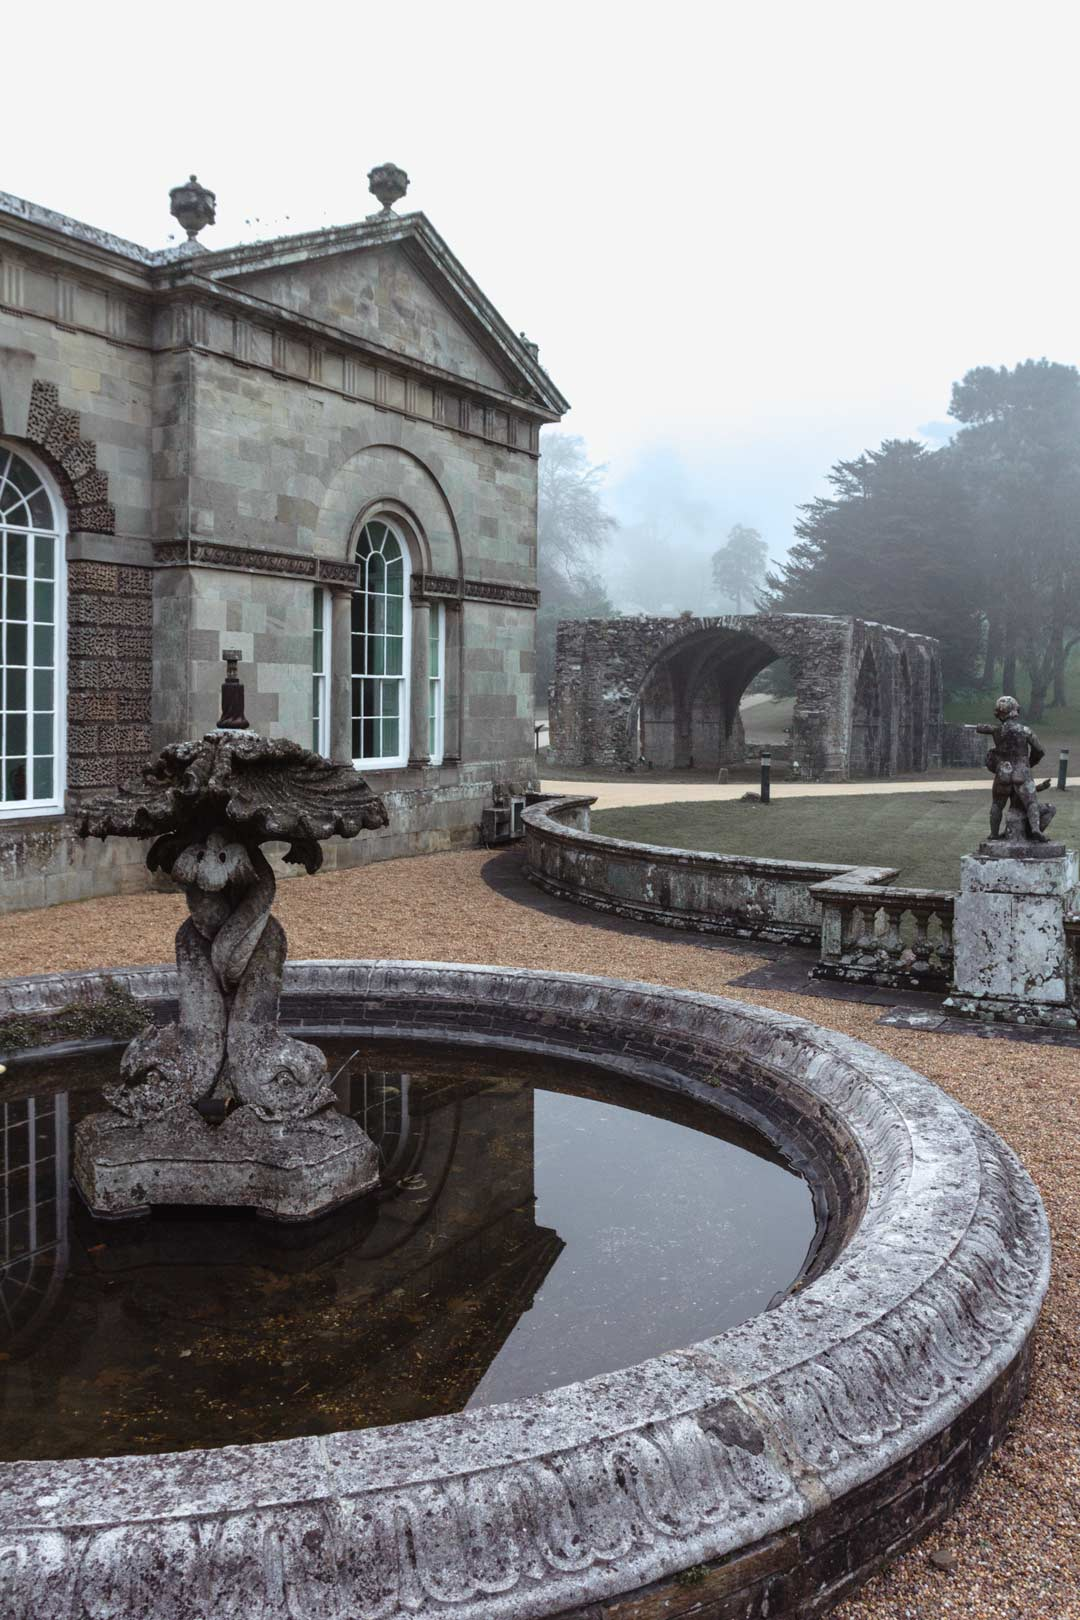 Architectural fountain at the Orangery designed in 1787 by Anthony Keck in Margam Park, Port Talbot